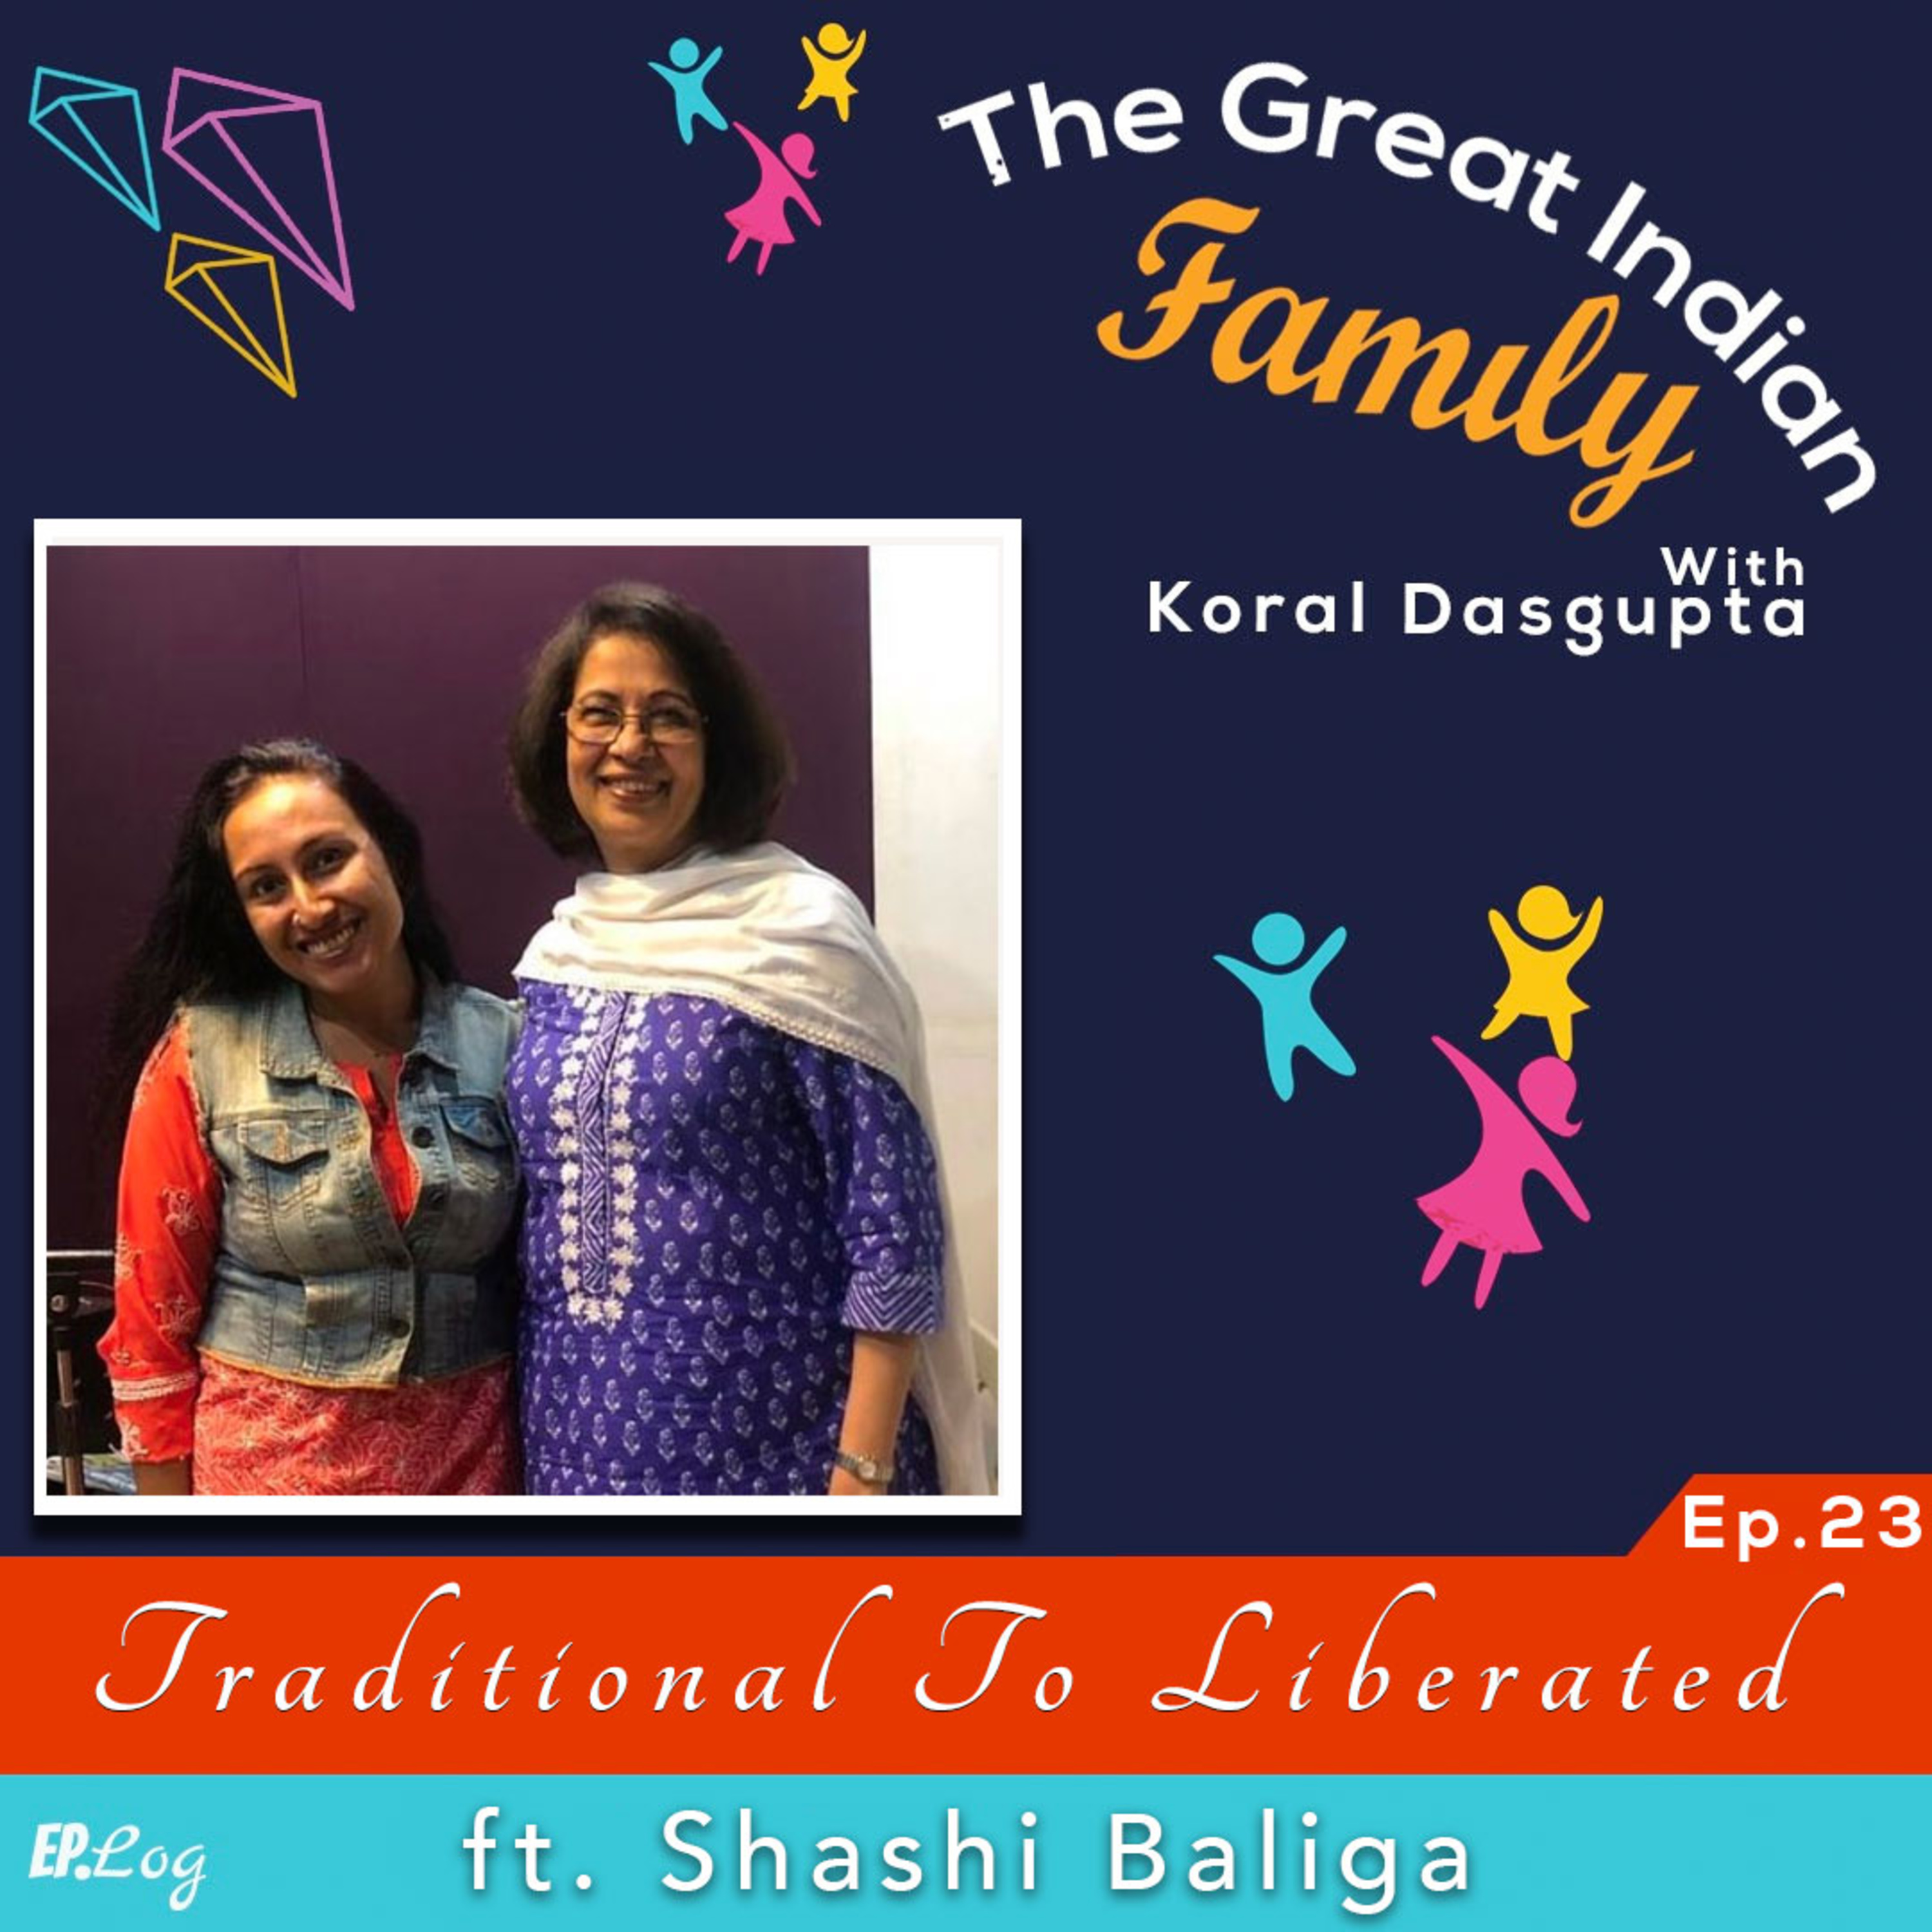 Ep.23 Traditional to Liberated ft. Shashi Baliga, Journalist, Executive Director, Literature Live